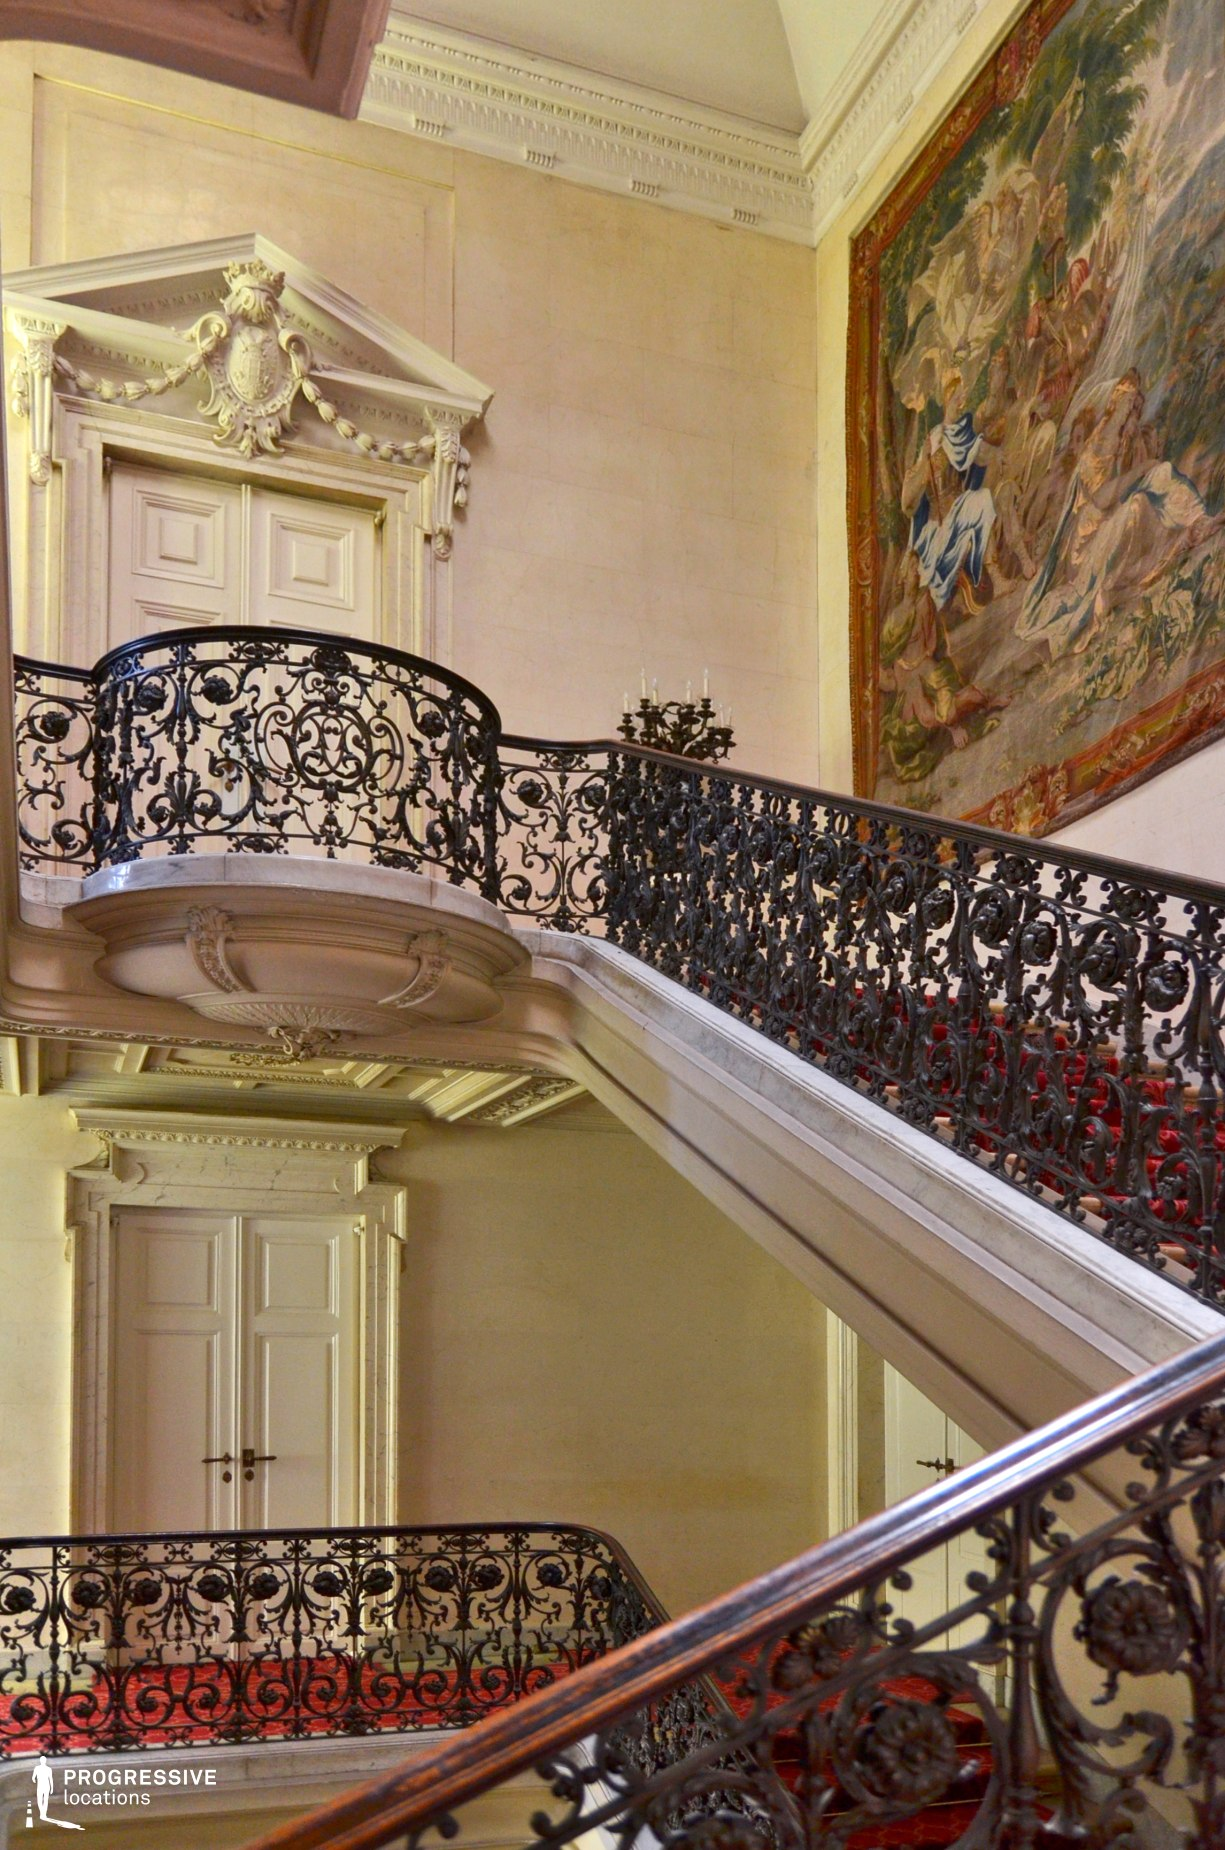 Locations in Austria: Staircase, Pallavicini Palace